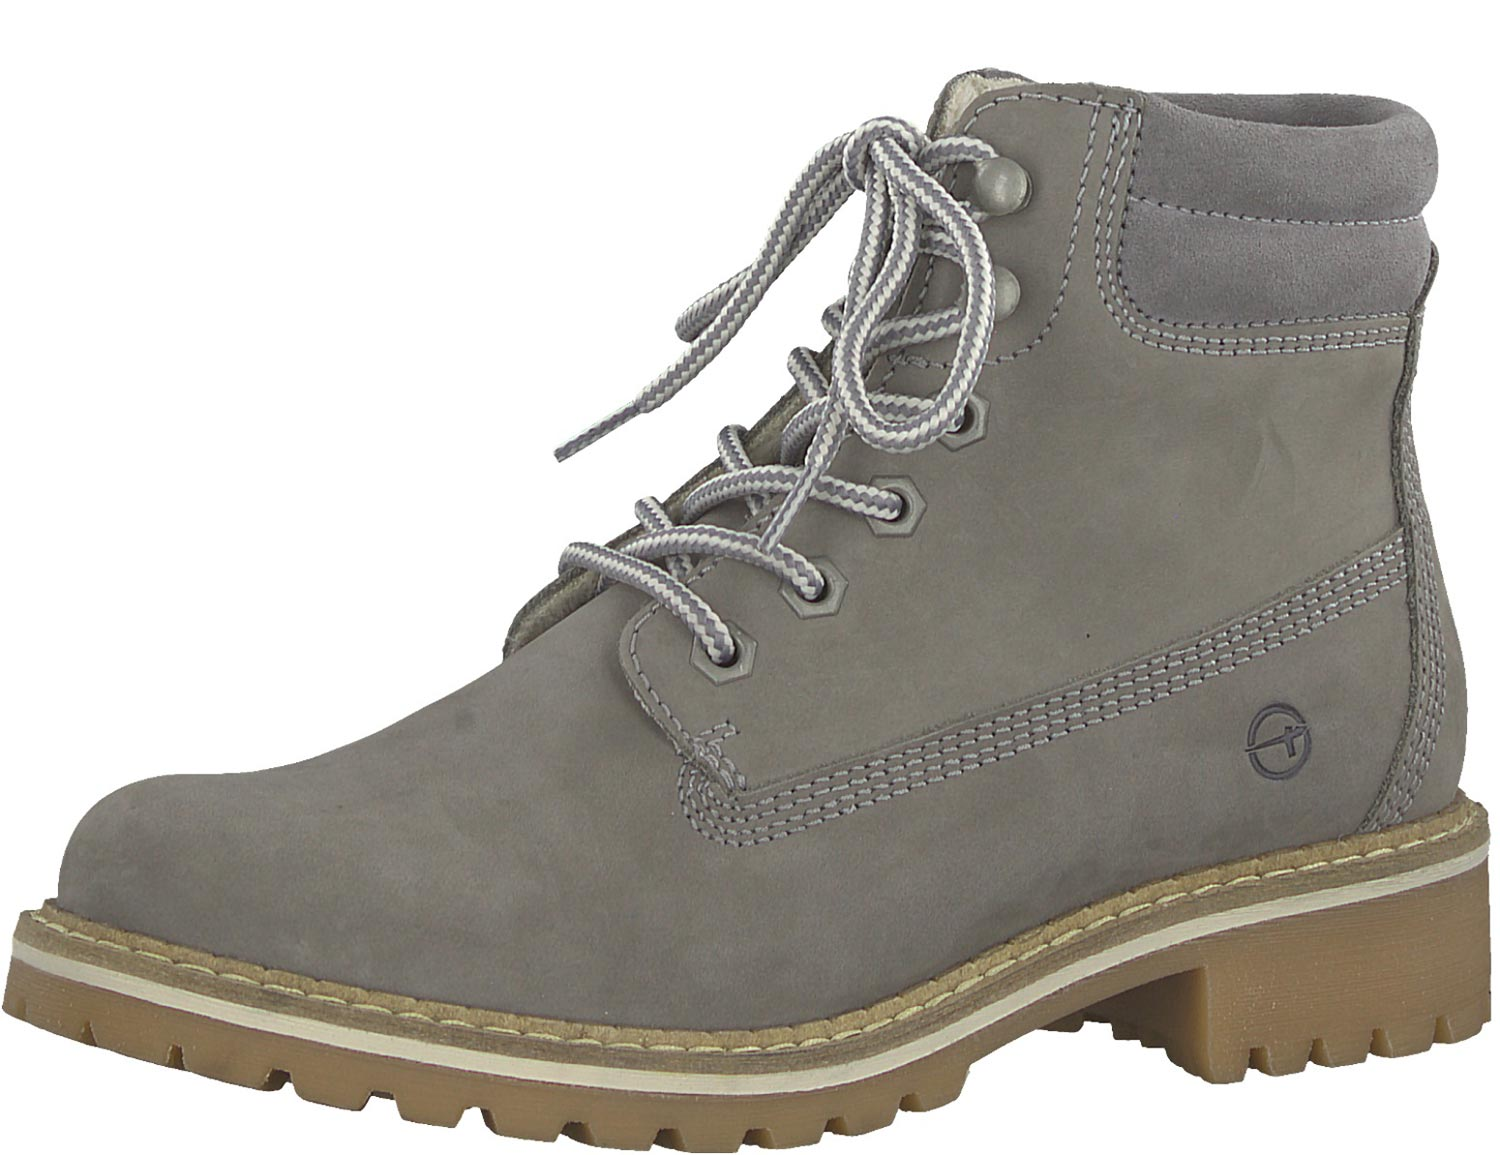 Tamaris Women's Boots Ankle Boots Lace up Boots 25242-21 254 Grey New